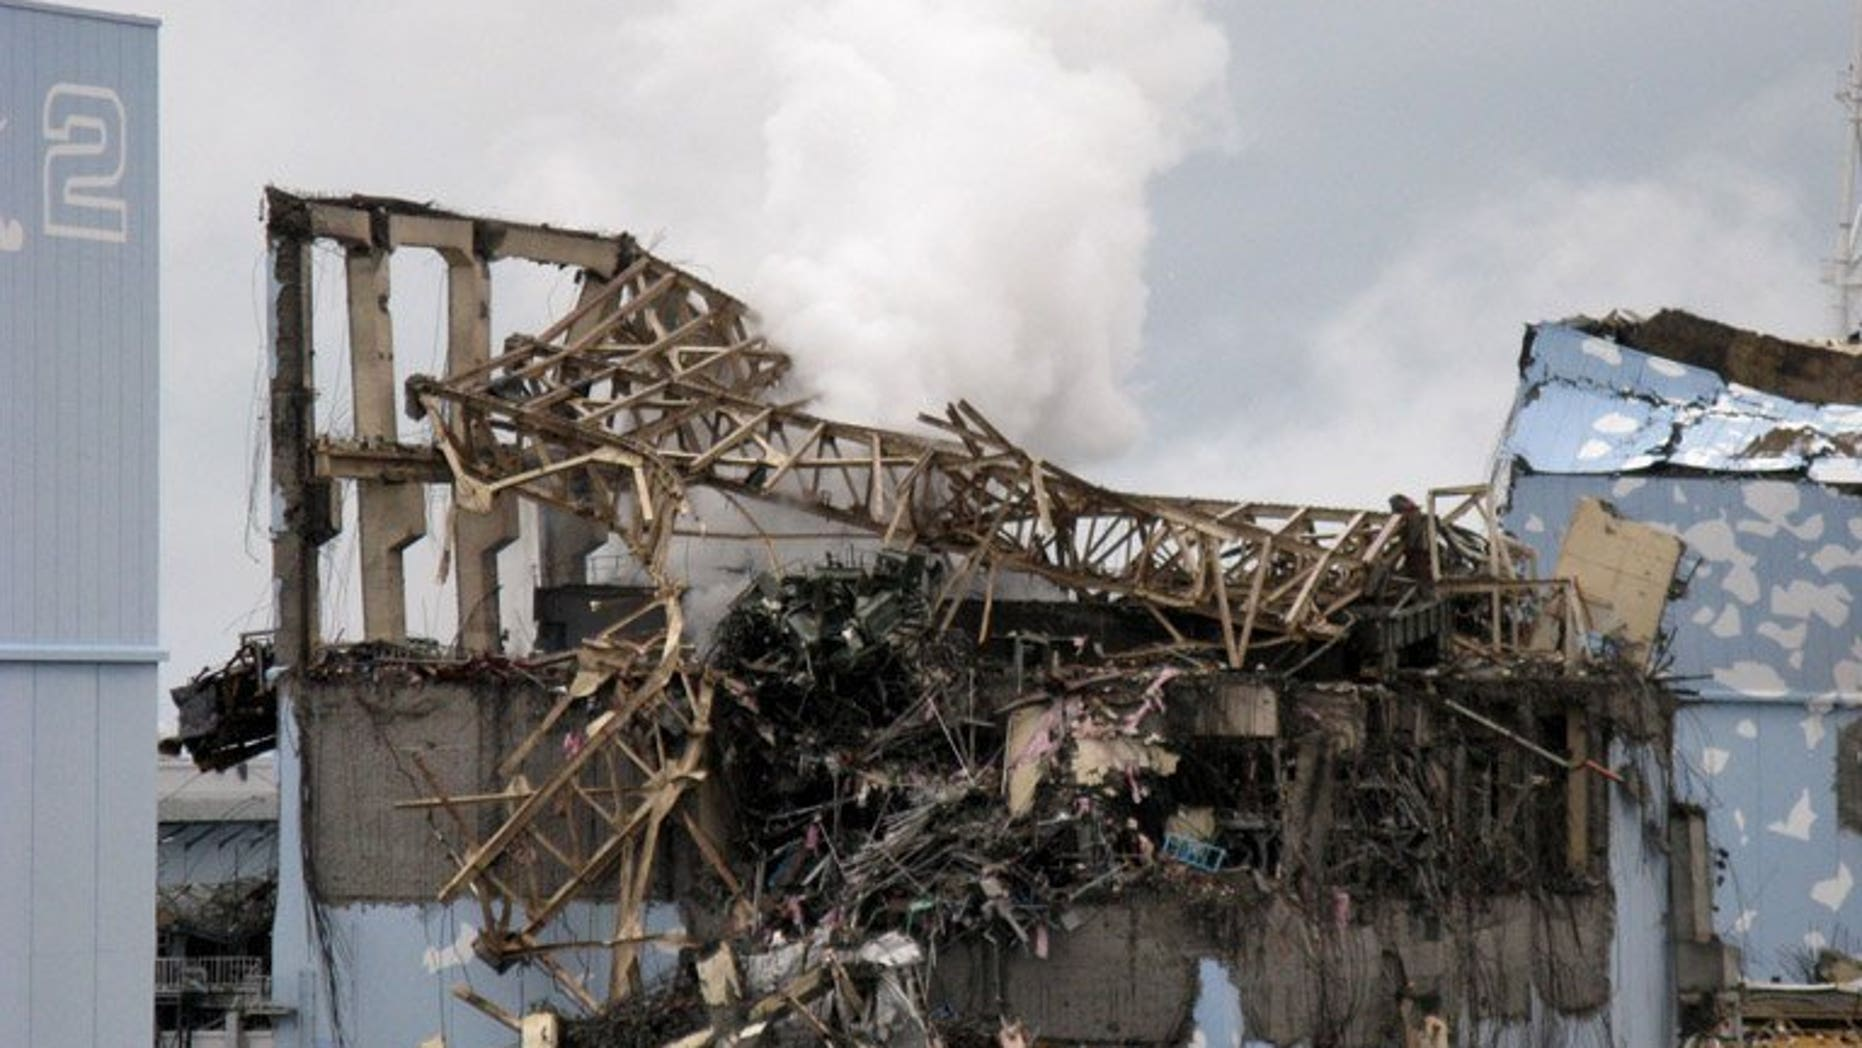 View of the unit 3 reactor at the crippled Fukushima nuclear power plant, on March 15, 2011. The clean-up after the Fukushima nuclear disaster will cost up to 5.81 trillion yen ($58 billion) -- five times more than estimated, according to Japan's National Institute of Advanced Industrial Science and Technology.